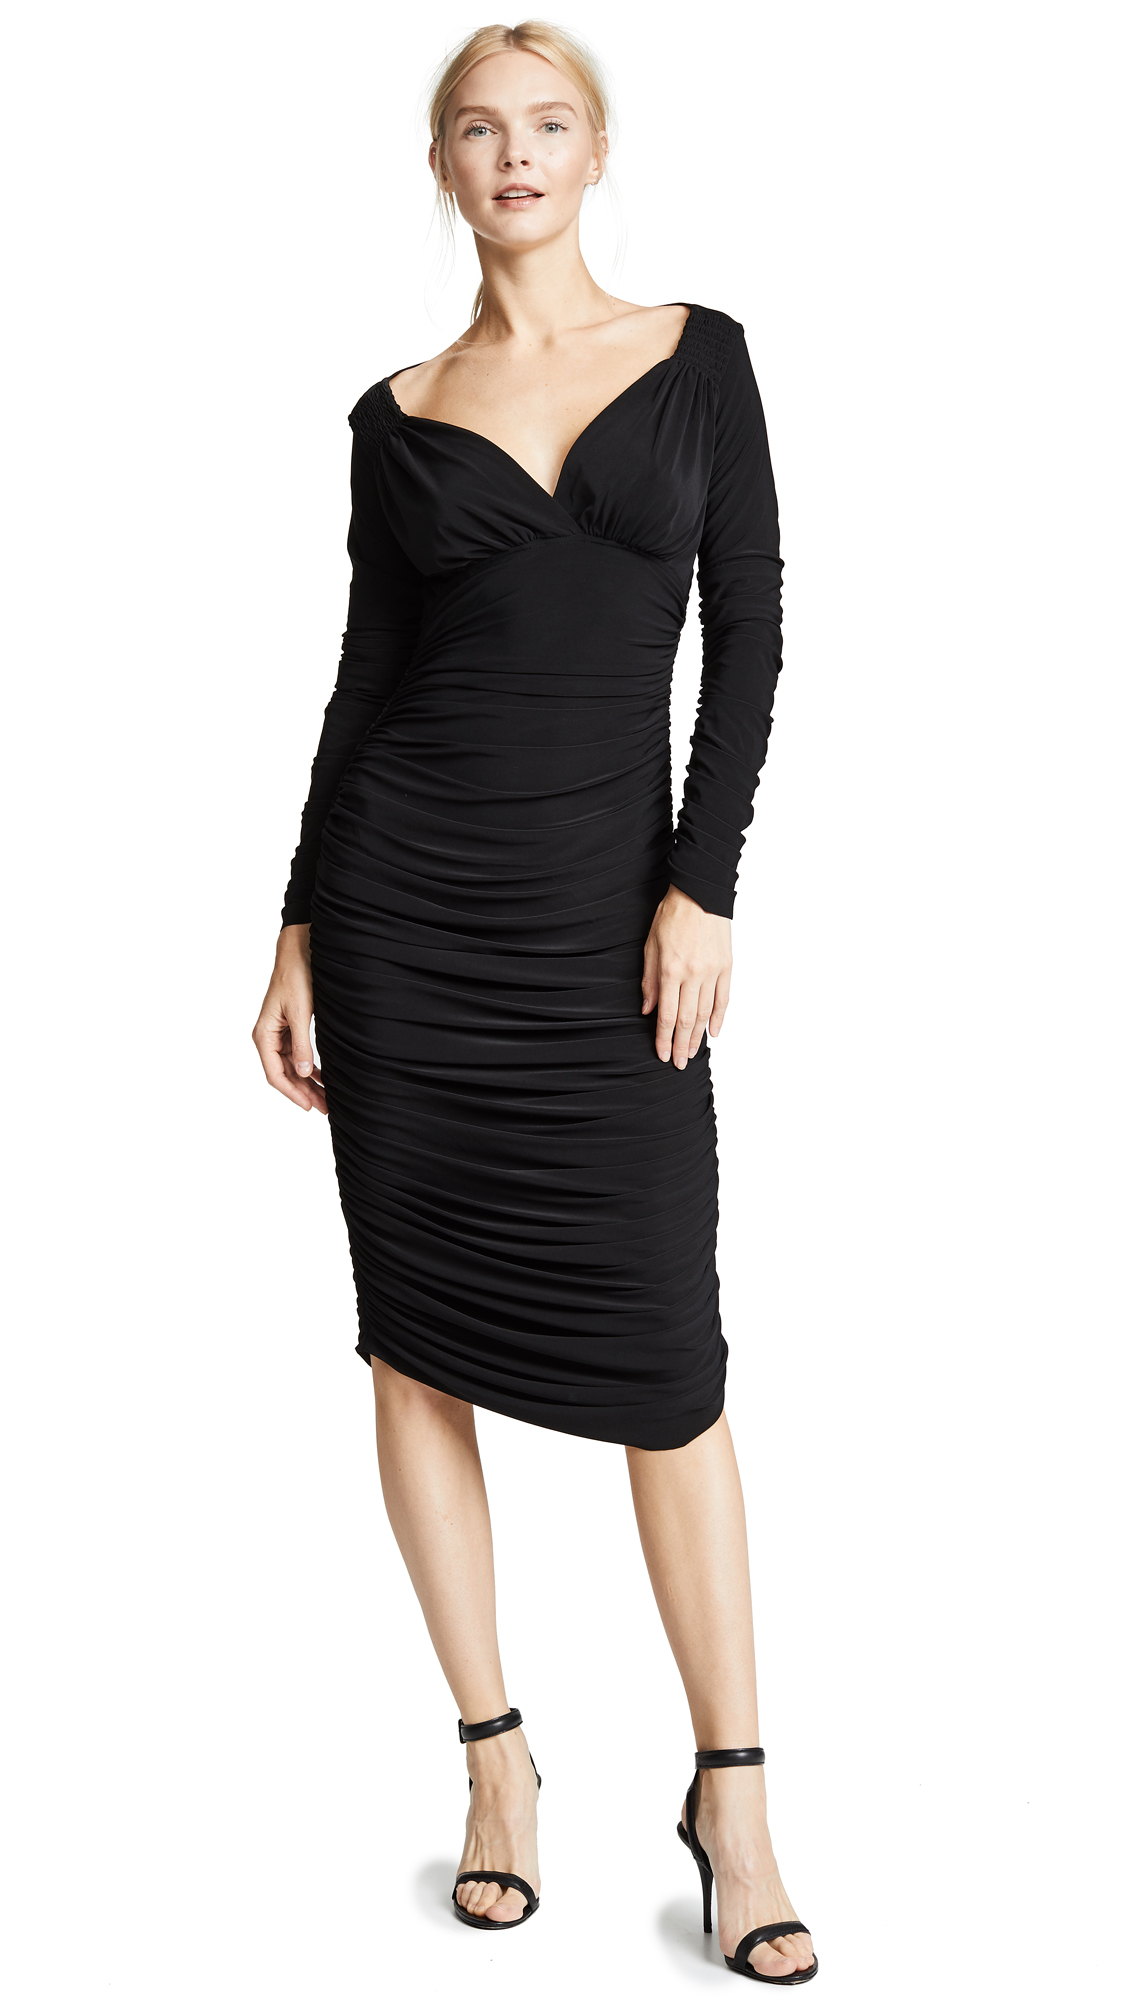 Norma Kamali Long Sleeve Tara Dress In Black